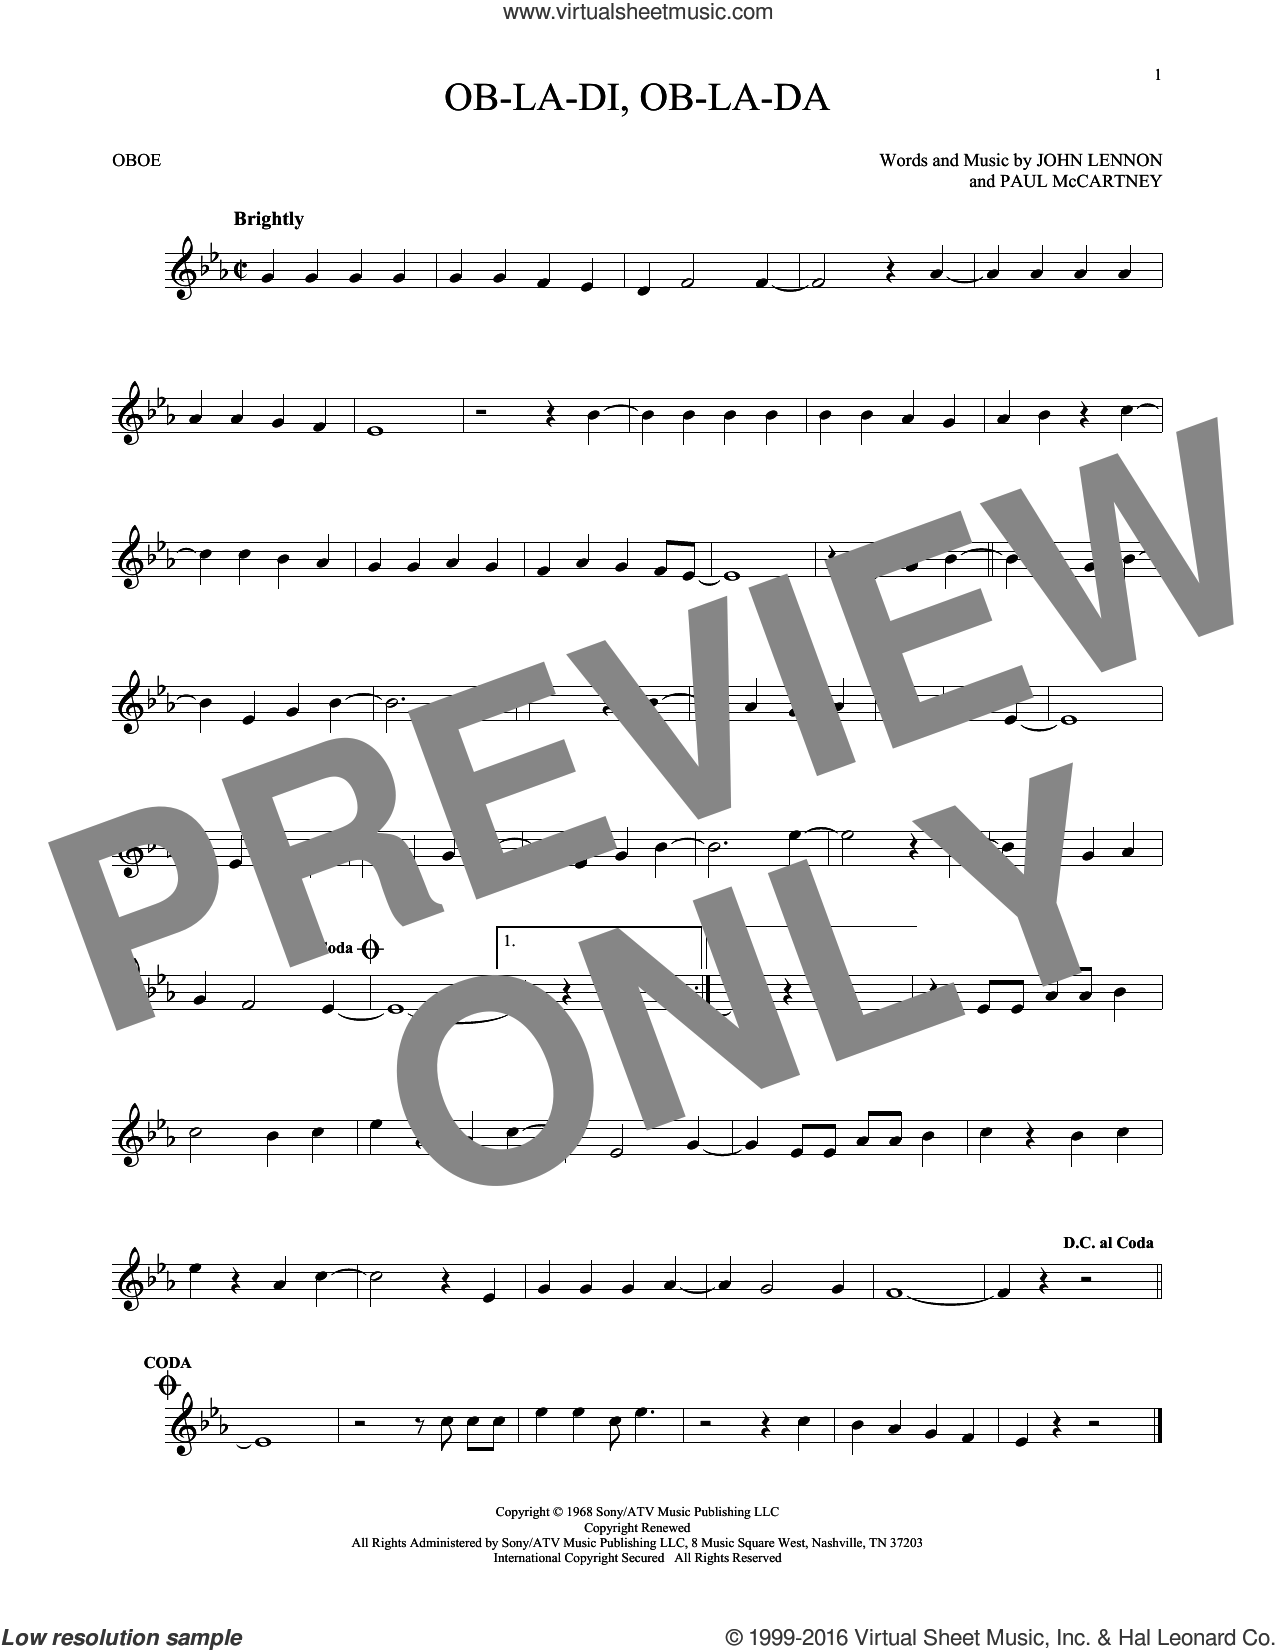 Ob-La-Di, Ob-La-Da sheet music for oboe solo by The Beatles, John Lennon and Paul McCartney, intermediate. Score Image Preview.